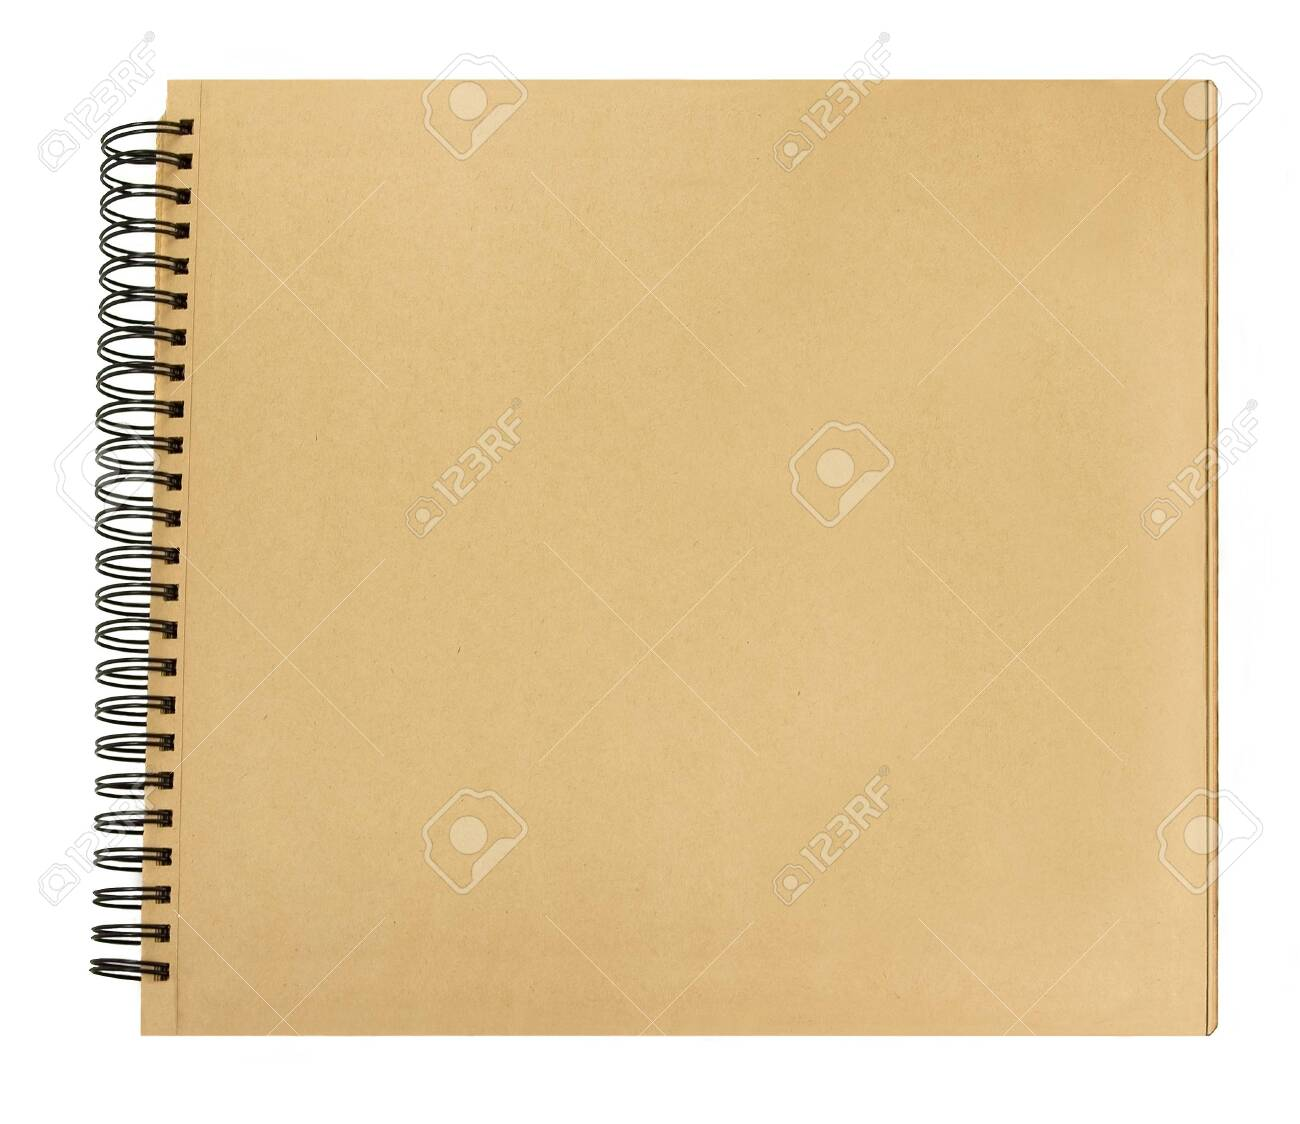 Front cover book recycled paper pages spiral binding - 121766310